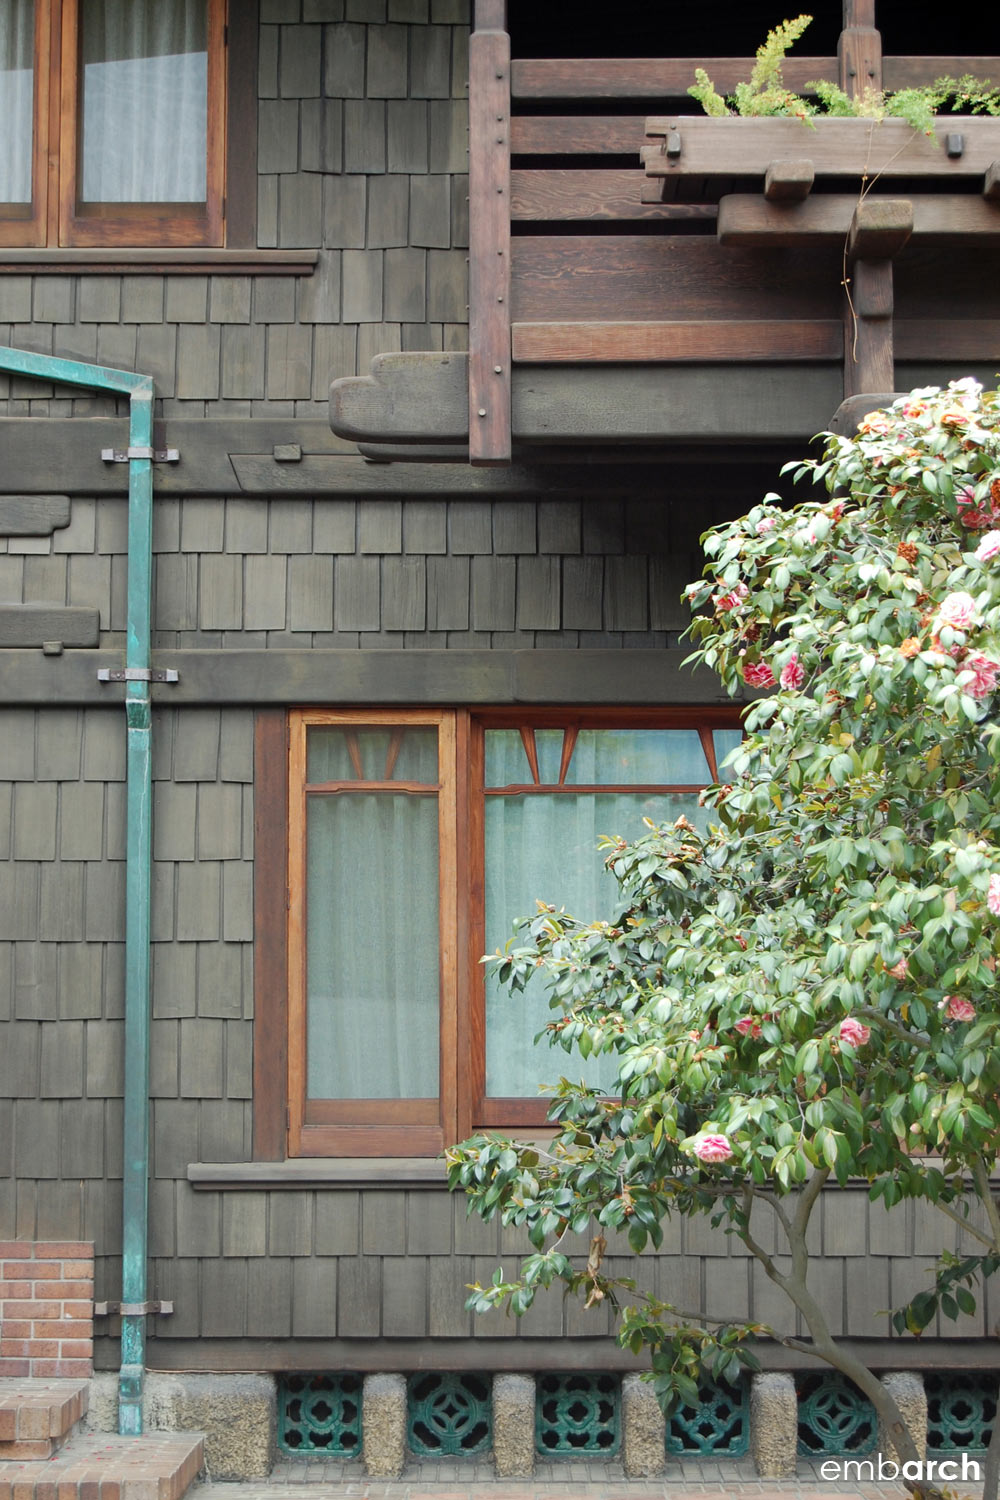 Gamble House - exterior detail